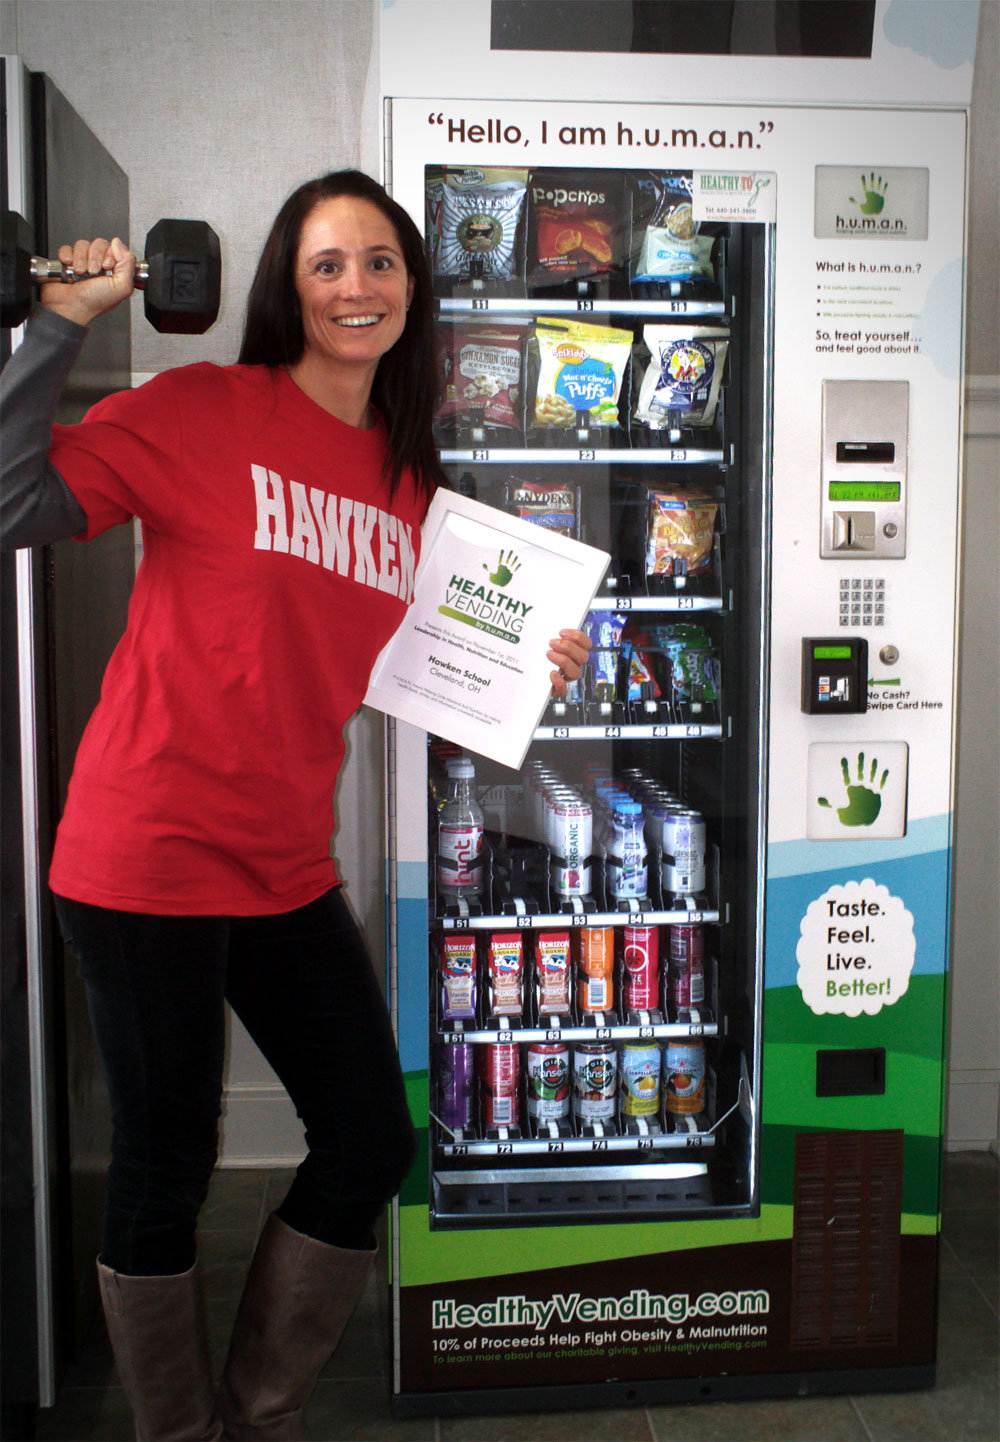 Hawken School Healthy Vending Program